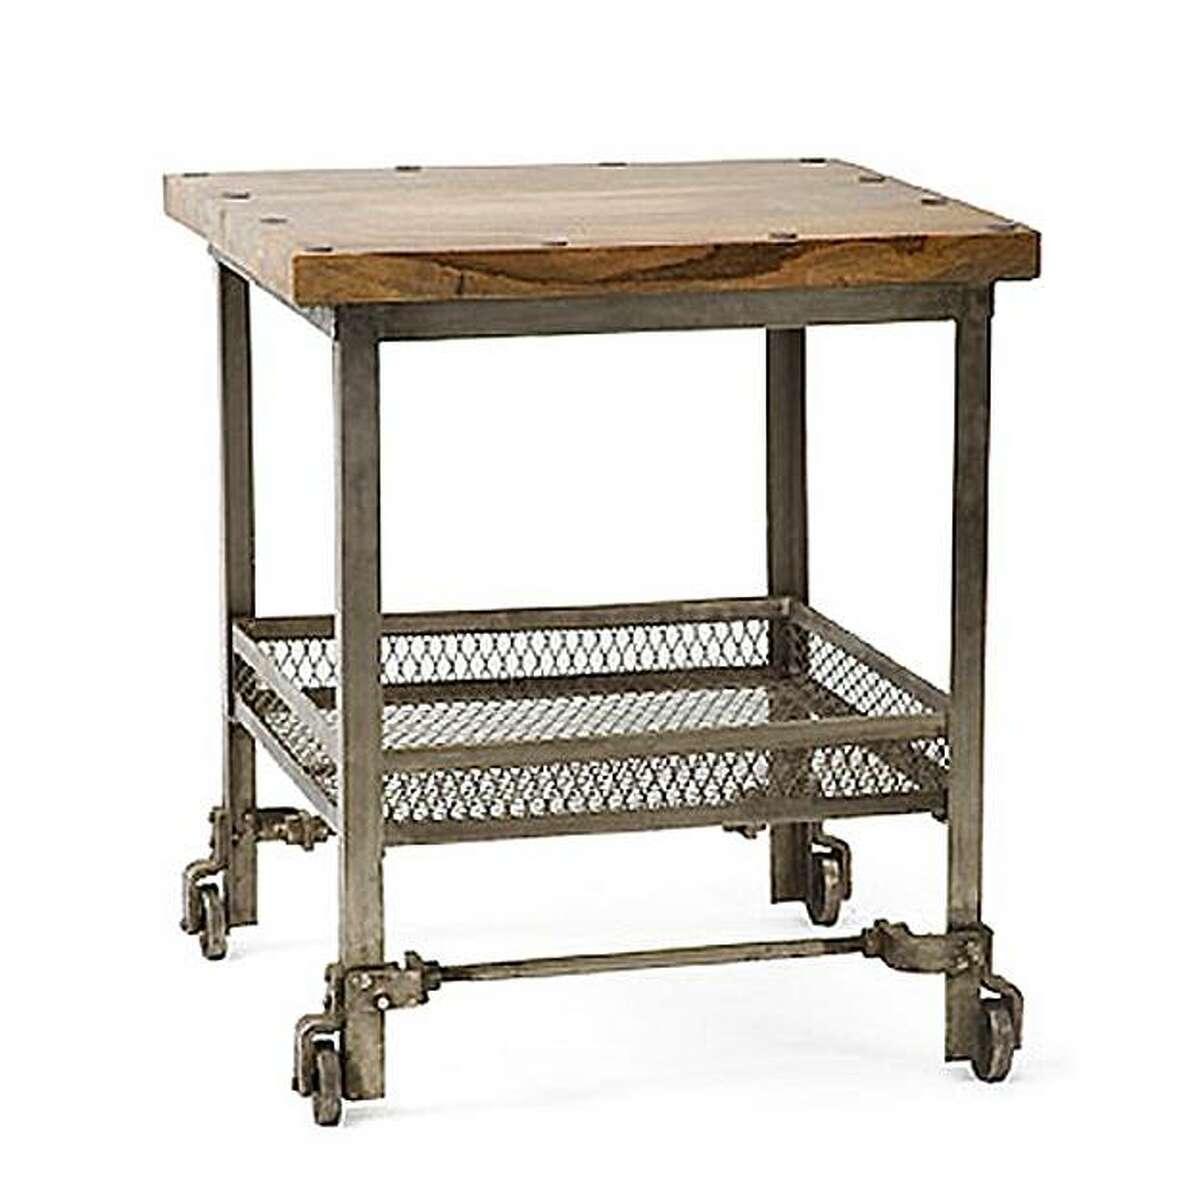 Factory Cart Side Table from HudsonGoods.com